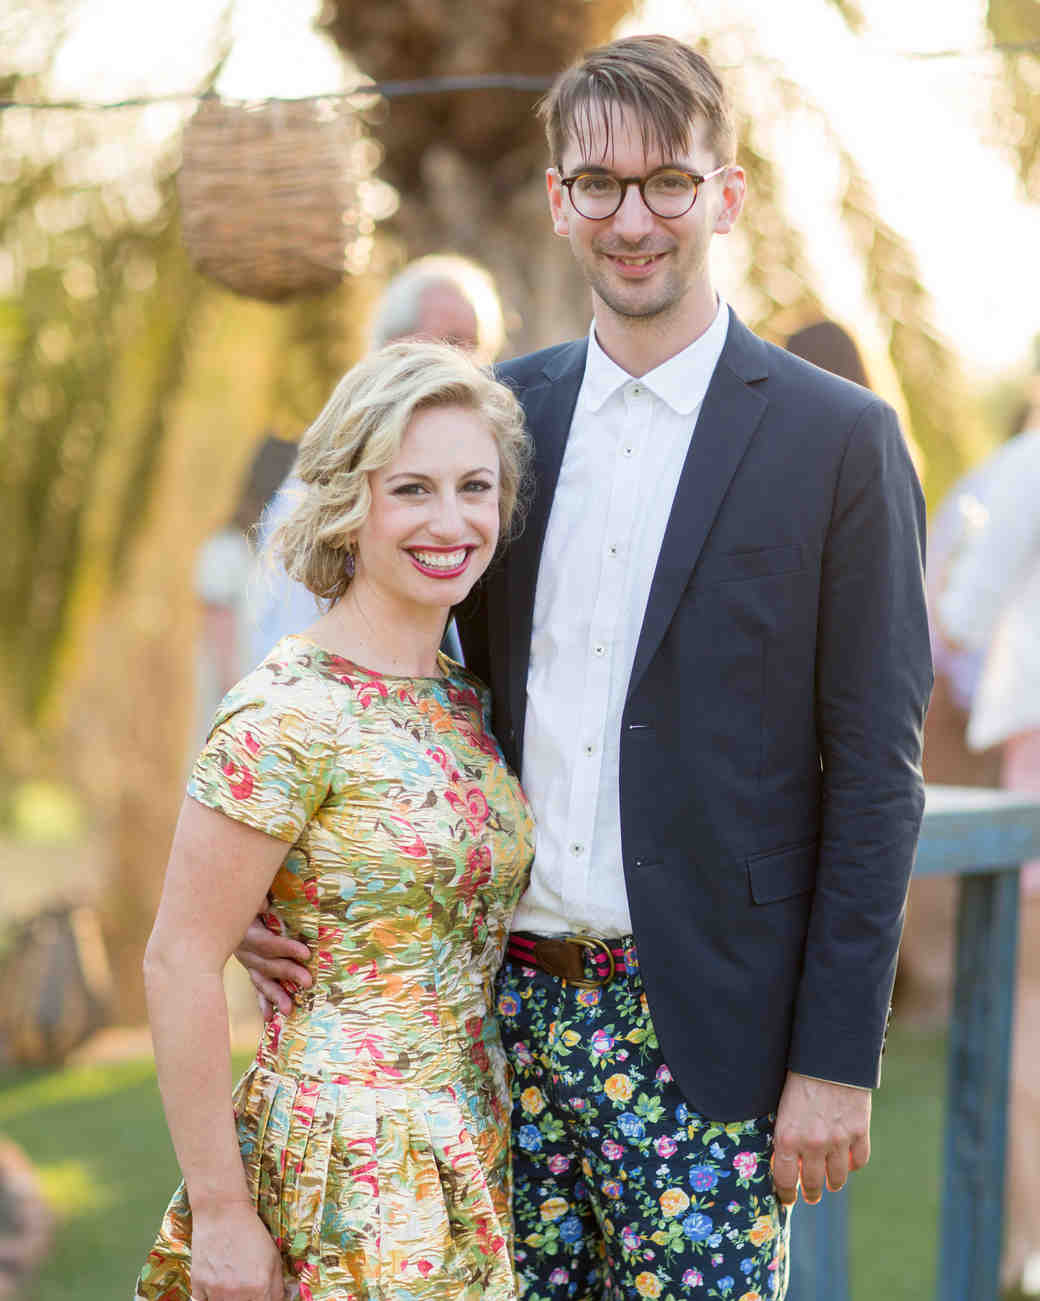 Wedding Guest Outfits for Couples